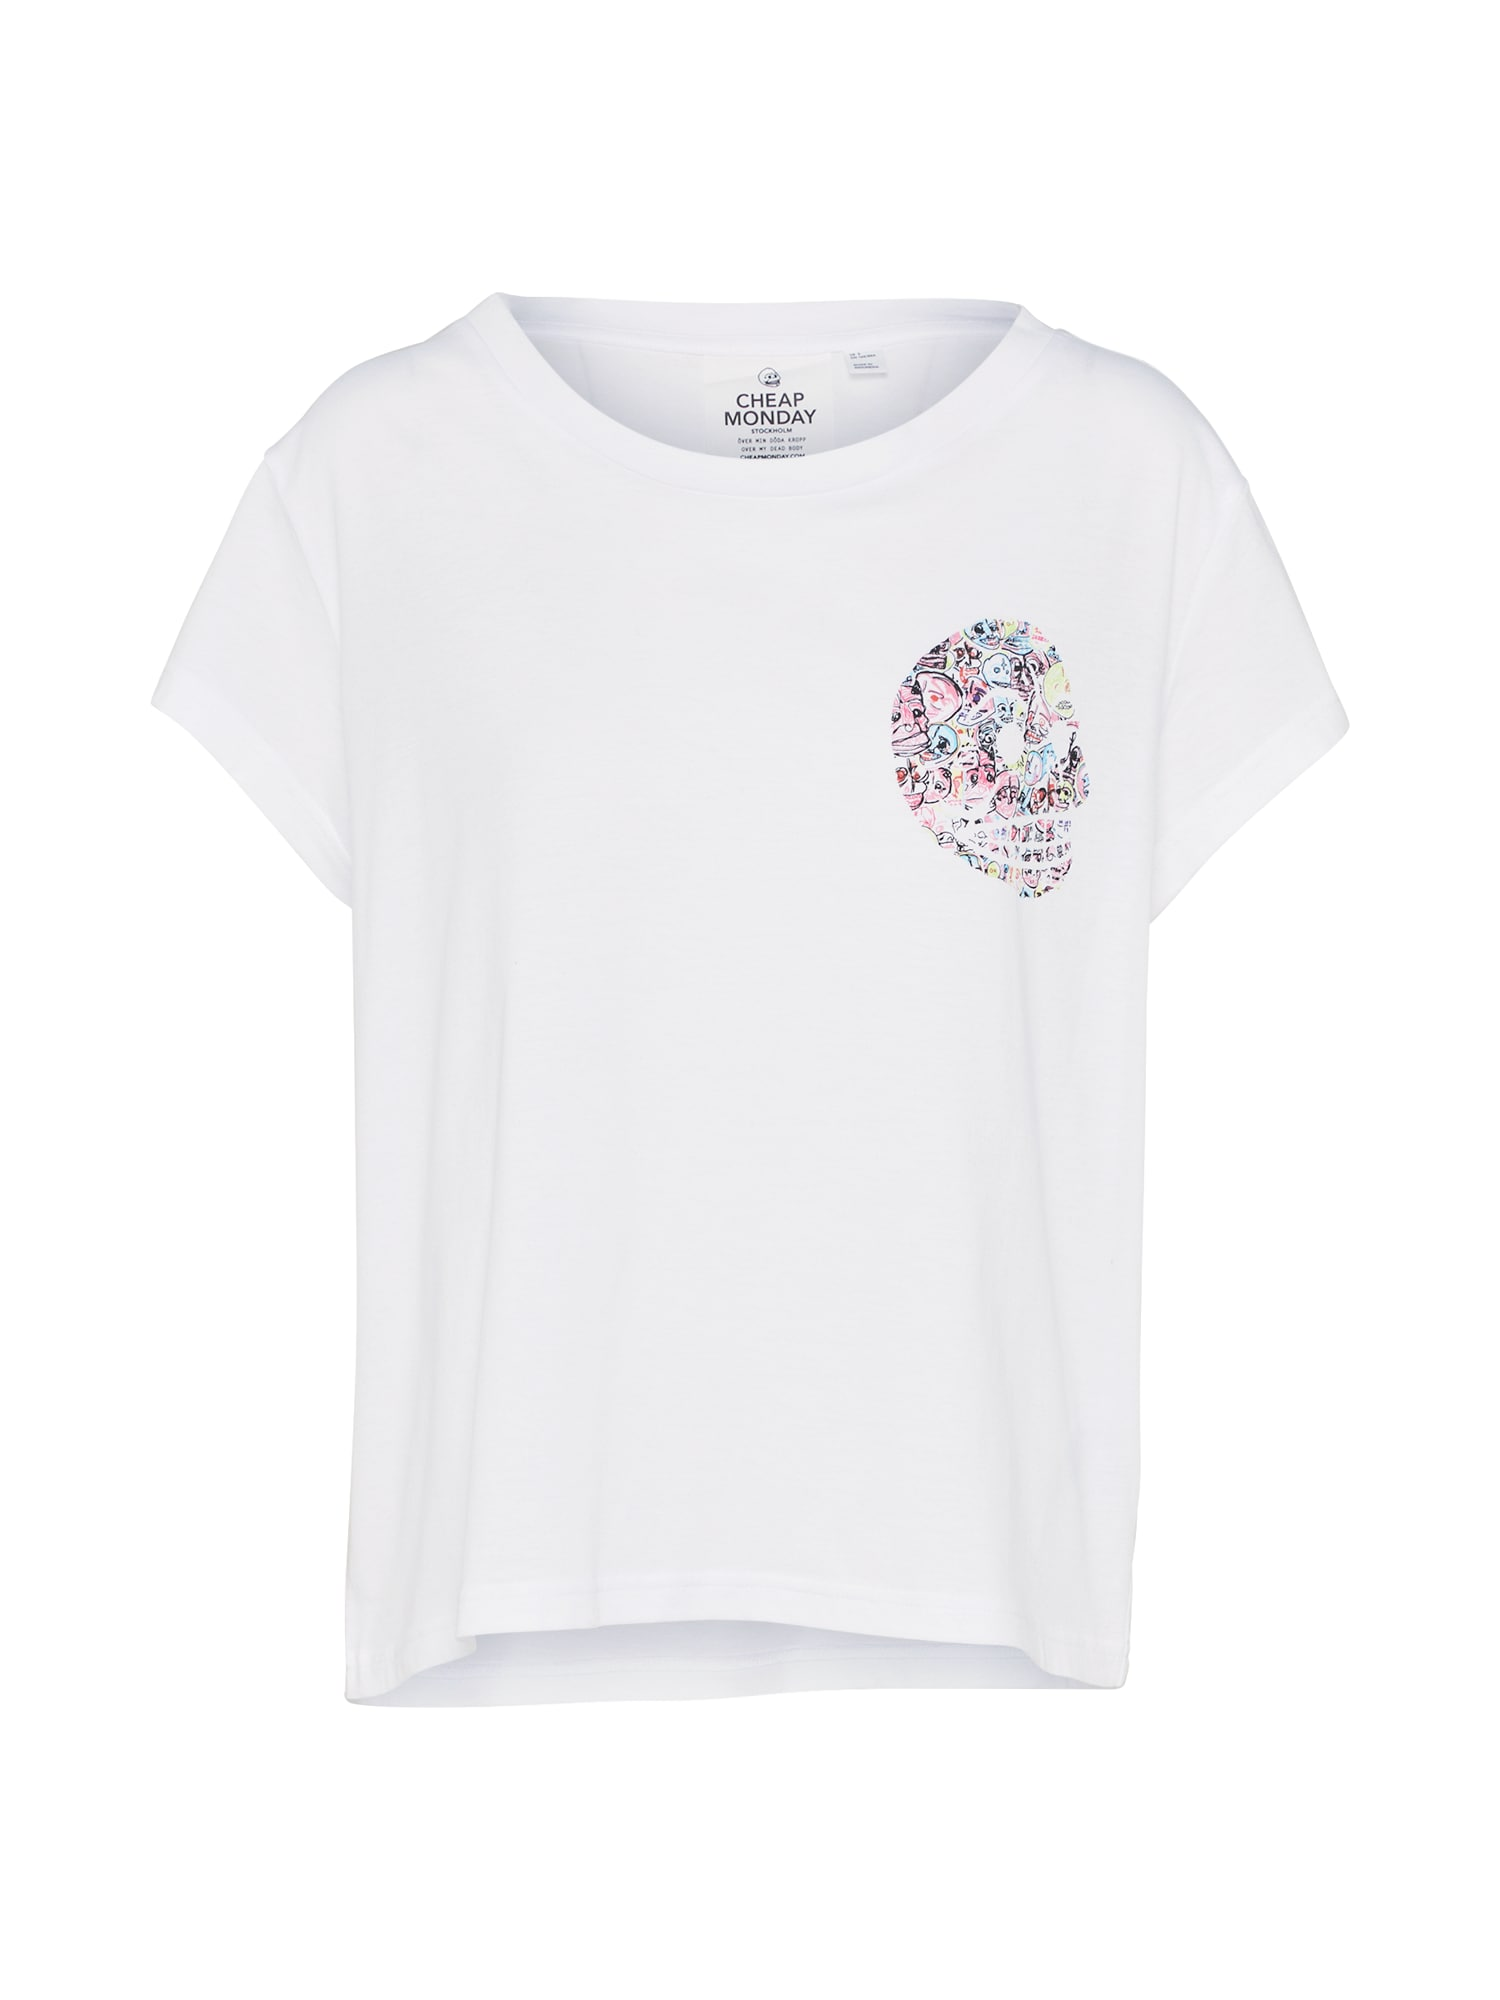 CHEAP MONDAY Dames Shirt Have tee Skull wit